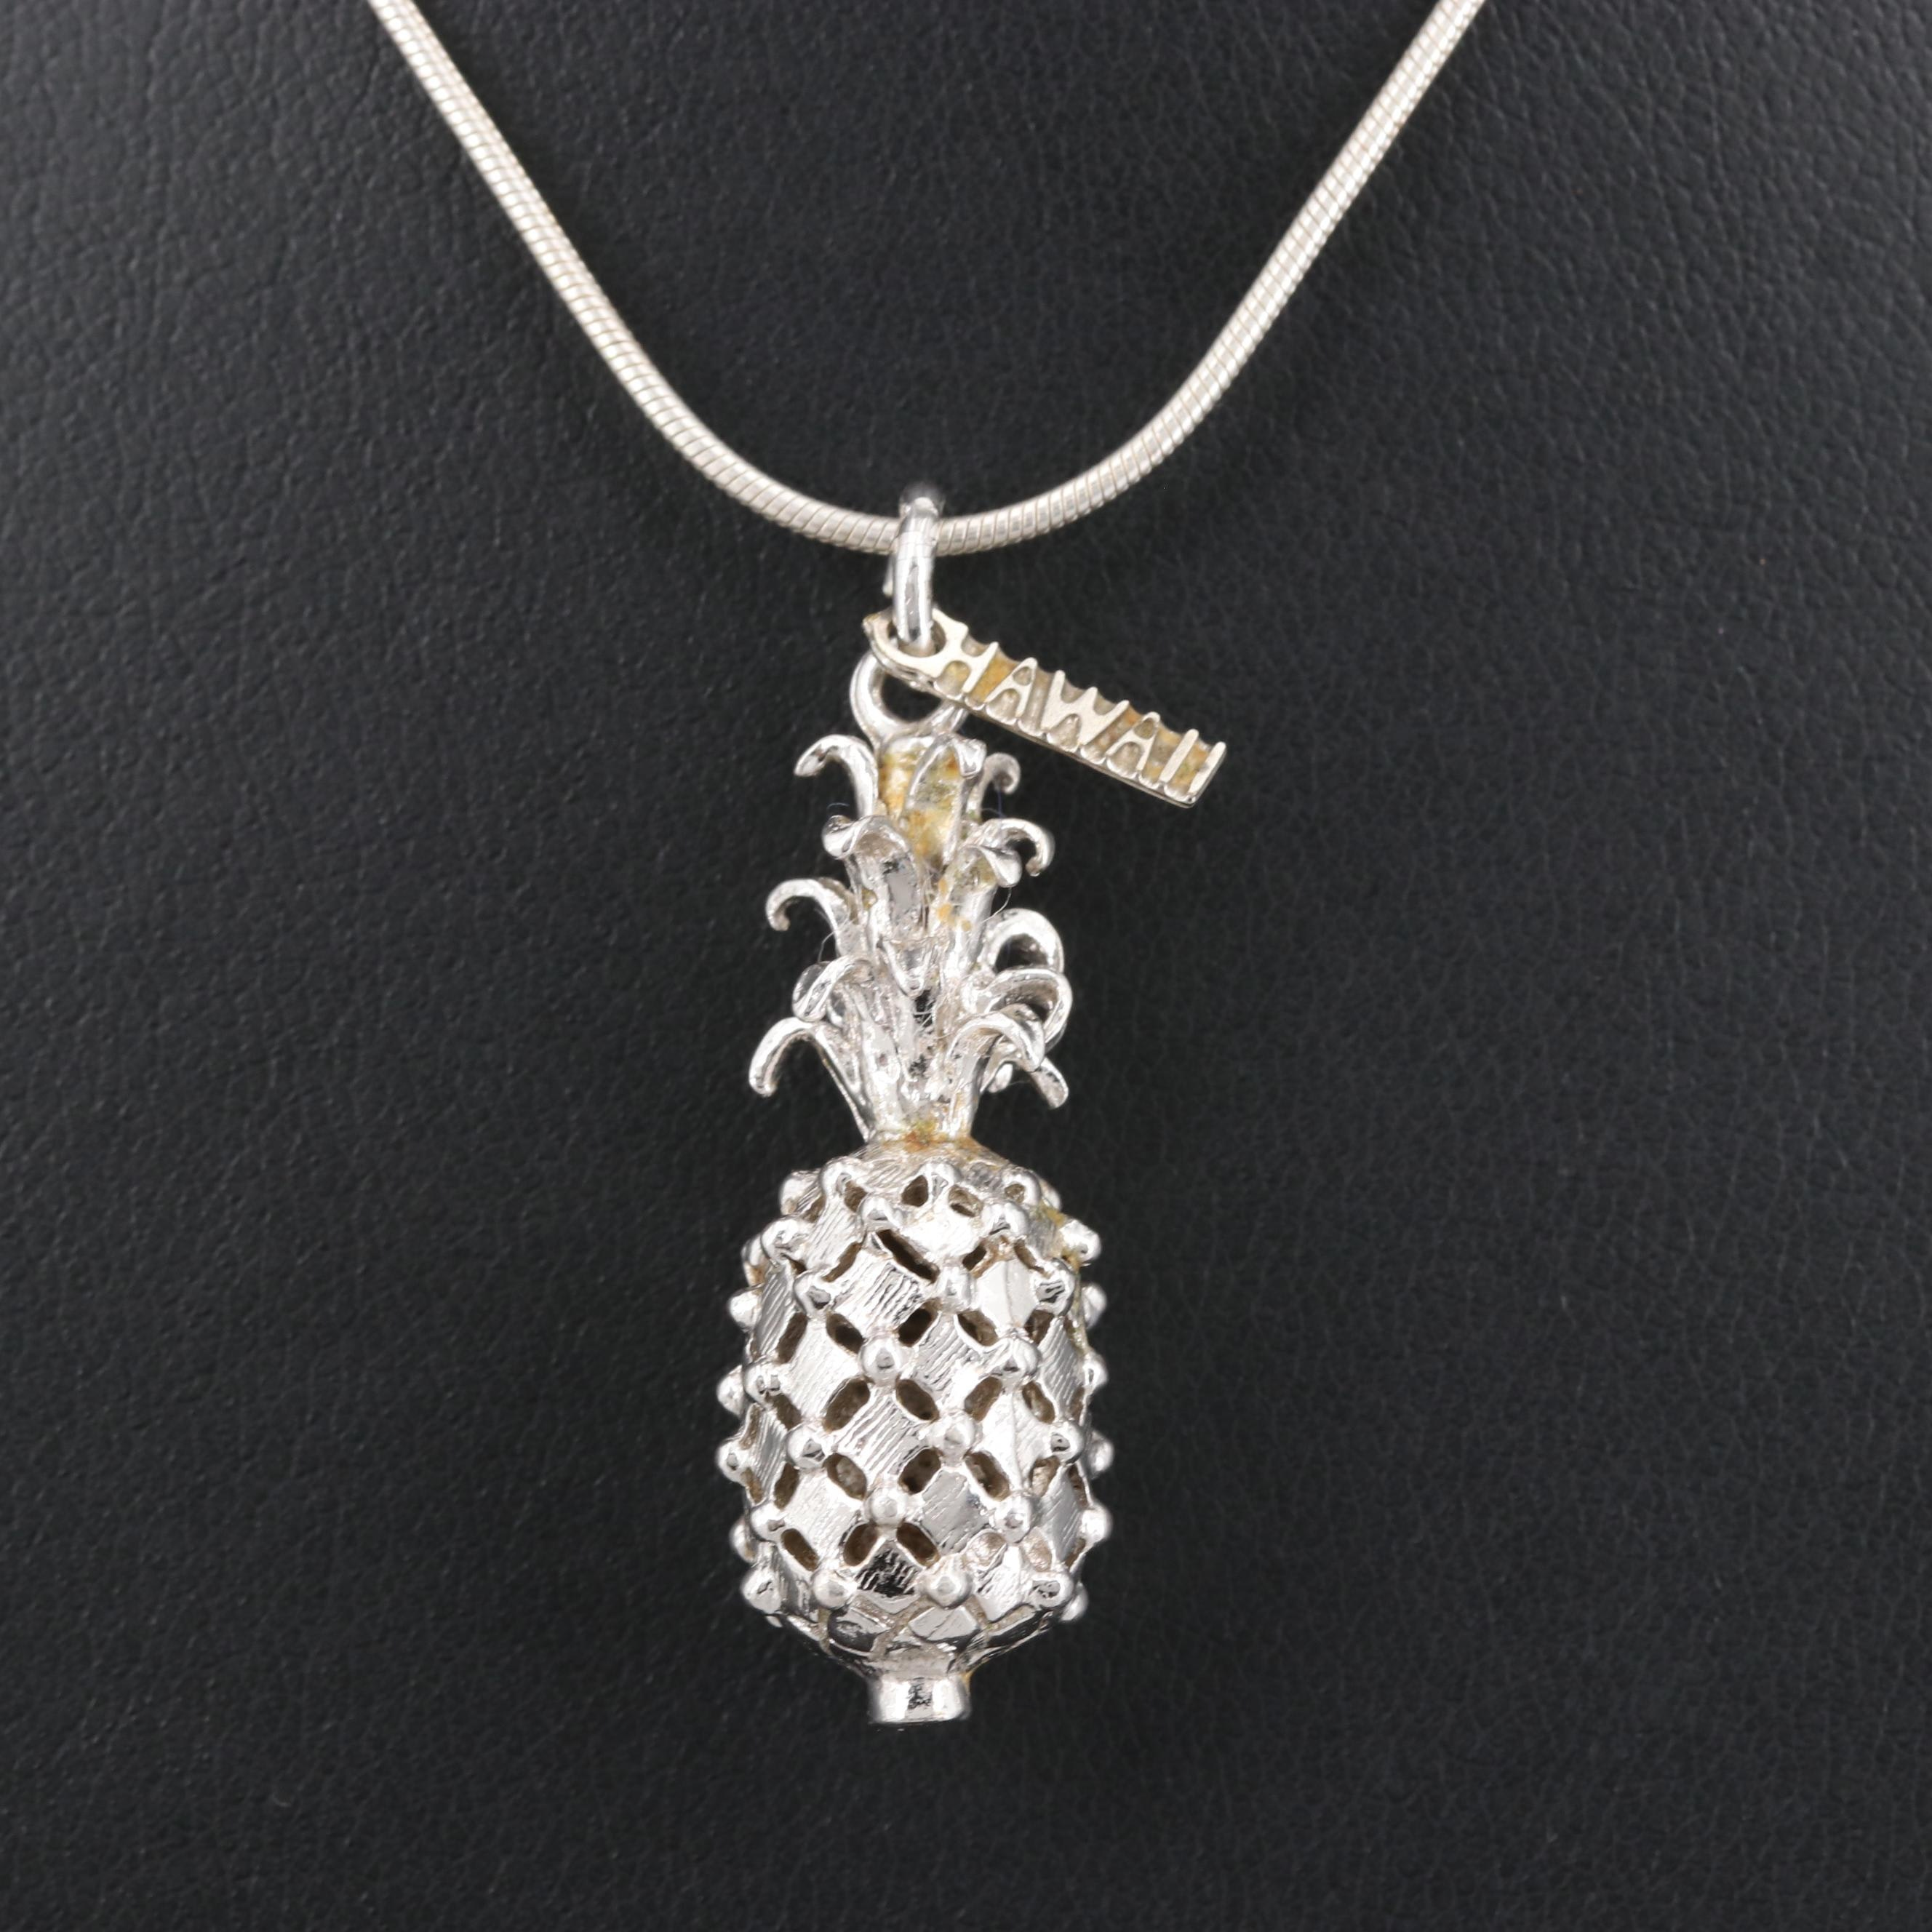 Sterling Silver Hawaiian Pineapple Pendant Necklace